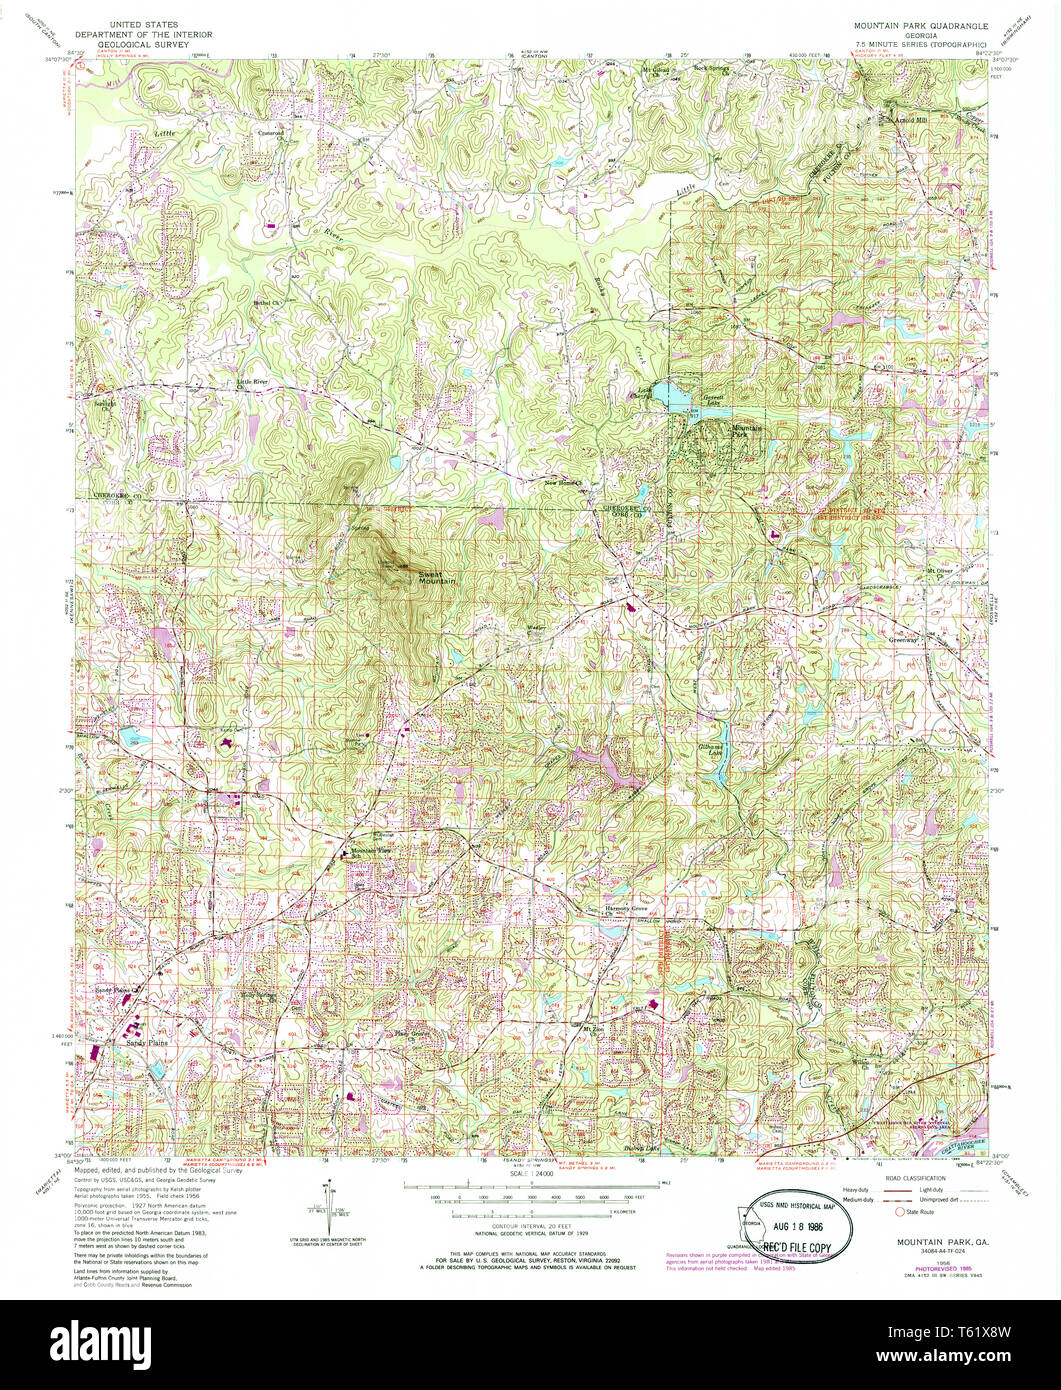 USGS TOPO Map Georgia GA Mountain Park 246429 1956 24000 ... Georgia Mountain Map on franklin county, appalachian mountains, harris county, historic south, atlanta metropolitan area, madison county, georgia elevation map, georgia swamps map, inland empire, georgia lakes map, stephens county, gilmer county, georgia river map, brasstown bald, gwinnett county, georgia rain map, georgia upper coastal plain map, georgia settlements map, georgia backroads map, georgia mtn map, northeast georgia map, georgia creeks map, georgia fishing map, georgia regions map, southern rivers, blue ridge mountains, stone mountain, north georgia map, jefferson county, warner robins, georgia swamp water, georgia mountain towns, georgia springs map, atlanta map, georgia foliage map, georgia and russia map, putnam county, north georgia,